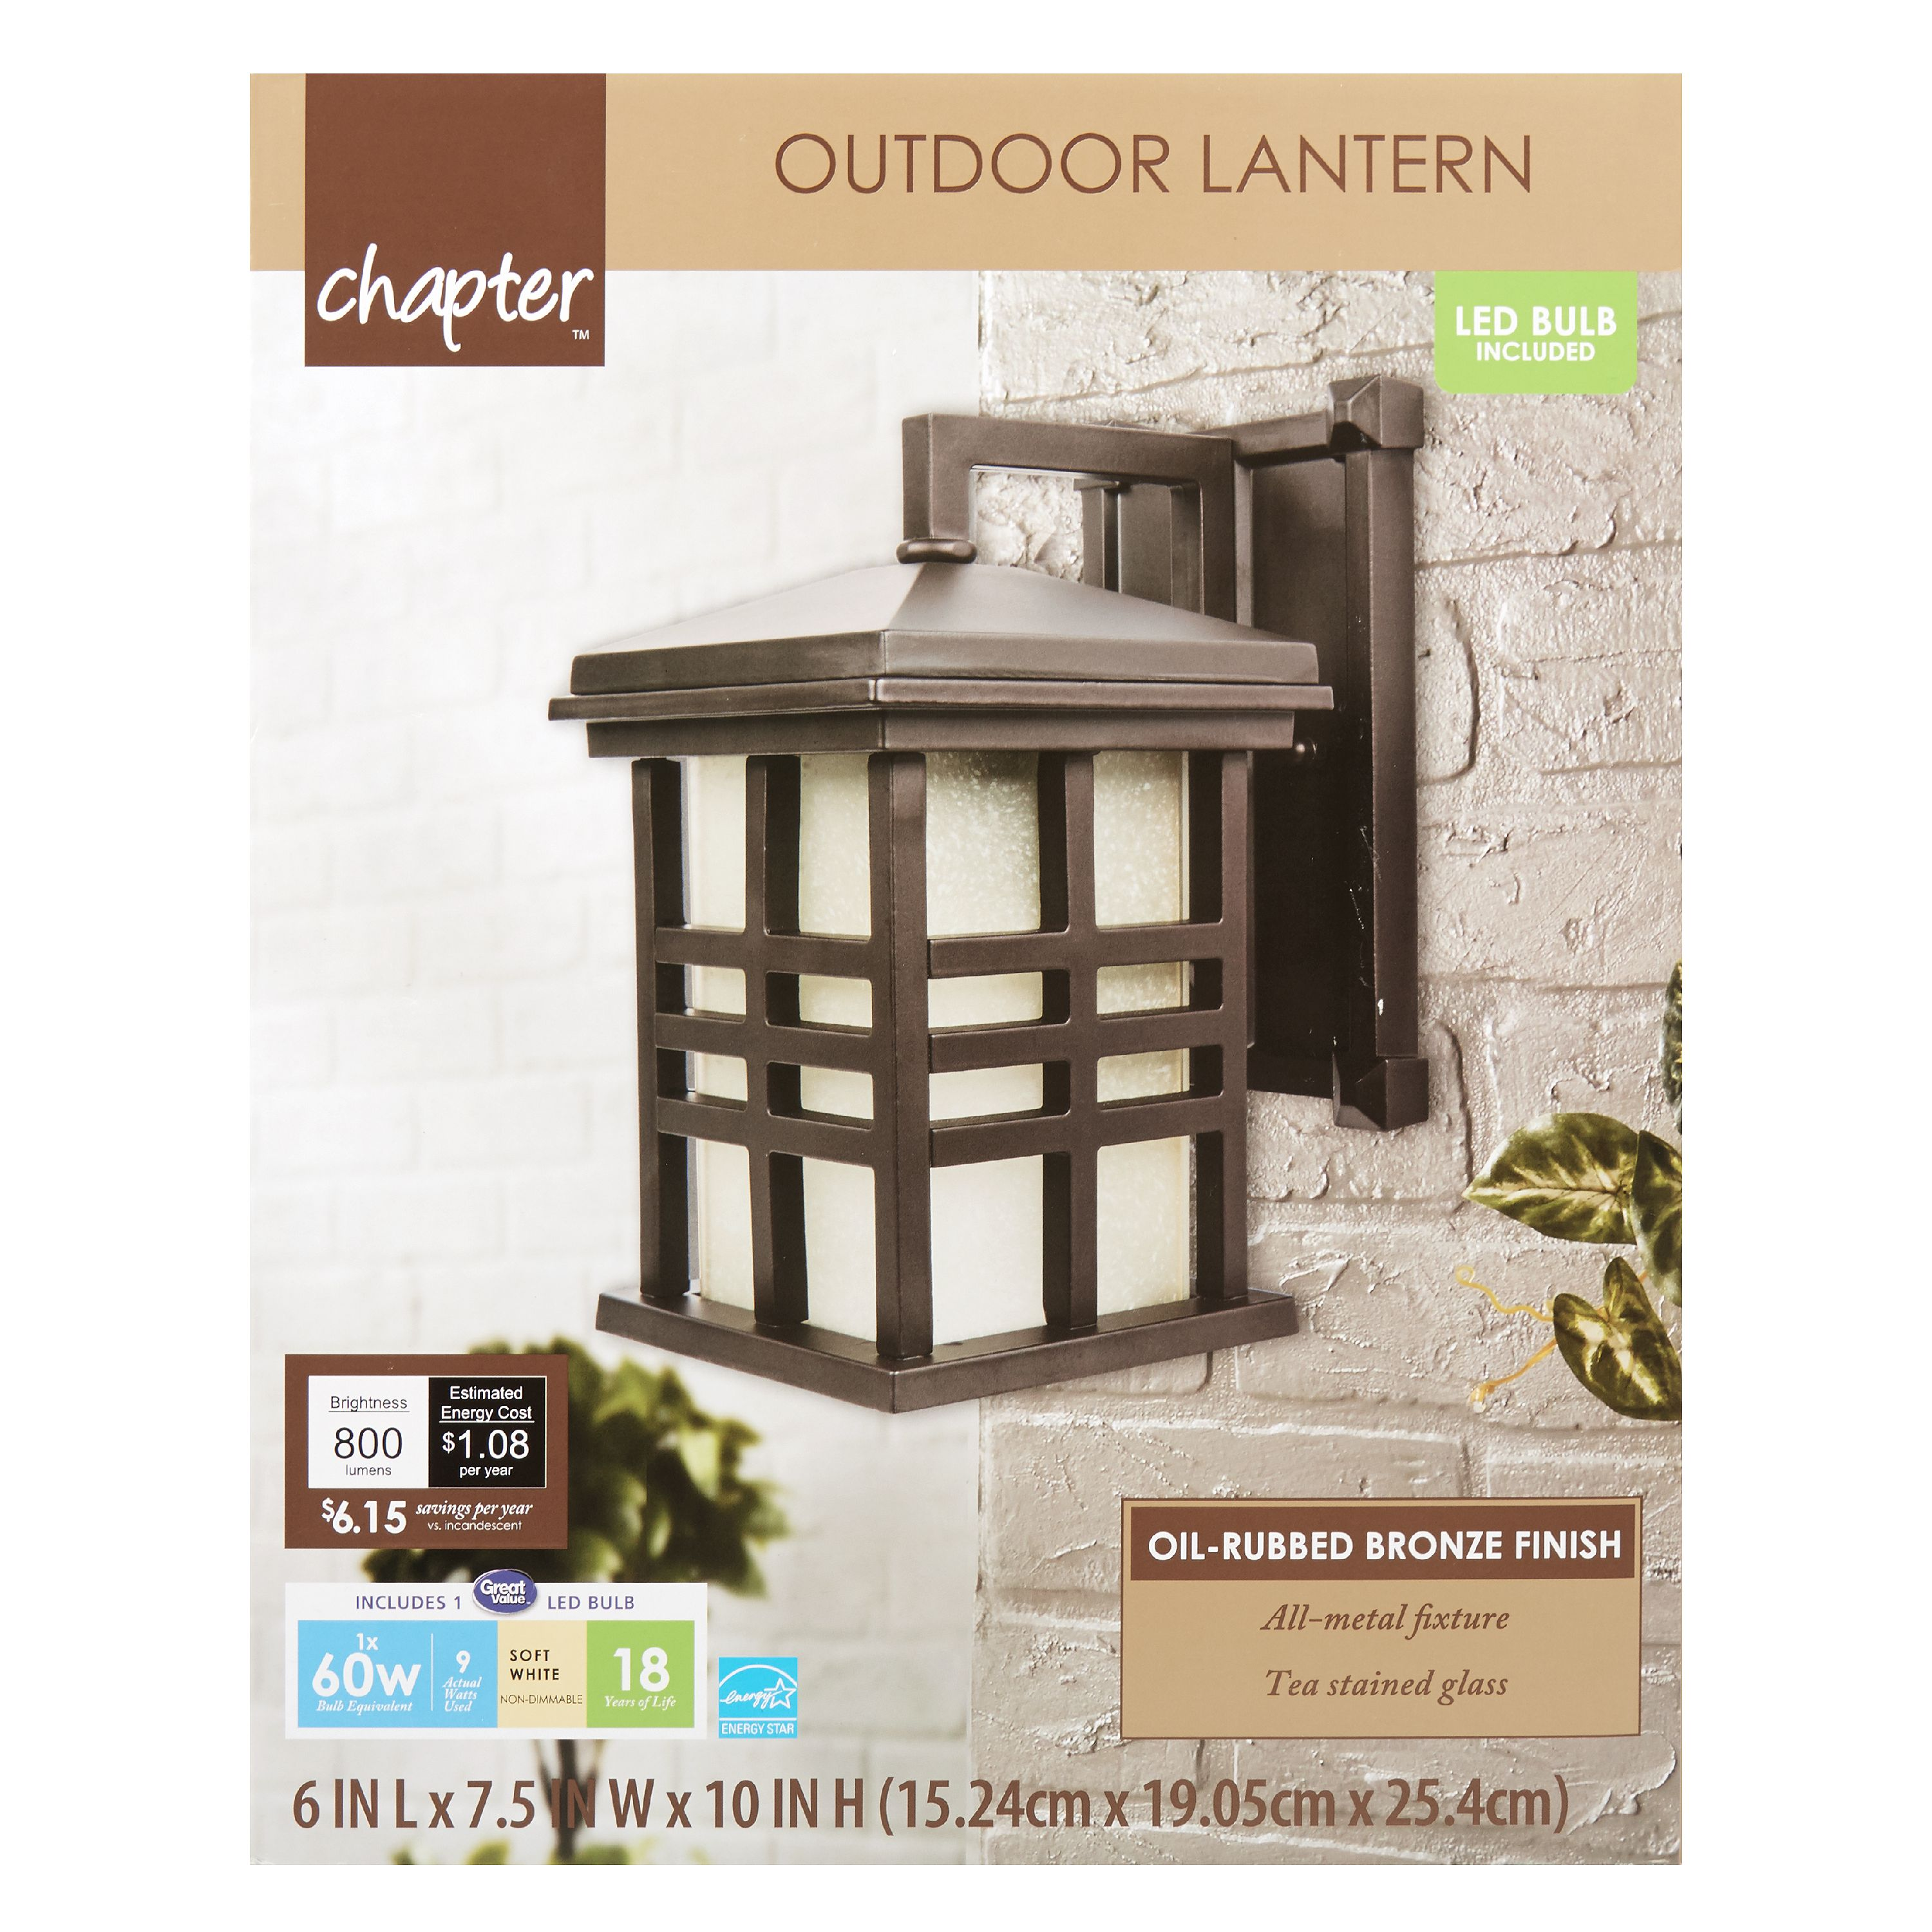 Chapter Outdoor Grill Lantern Orb – Walmart Inventory Checker